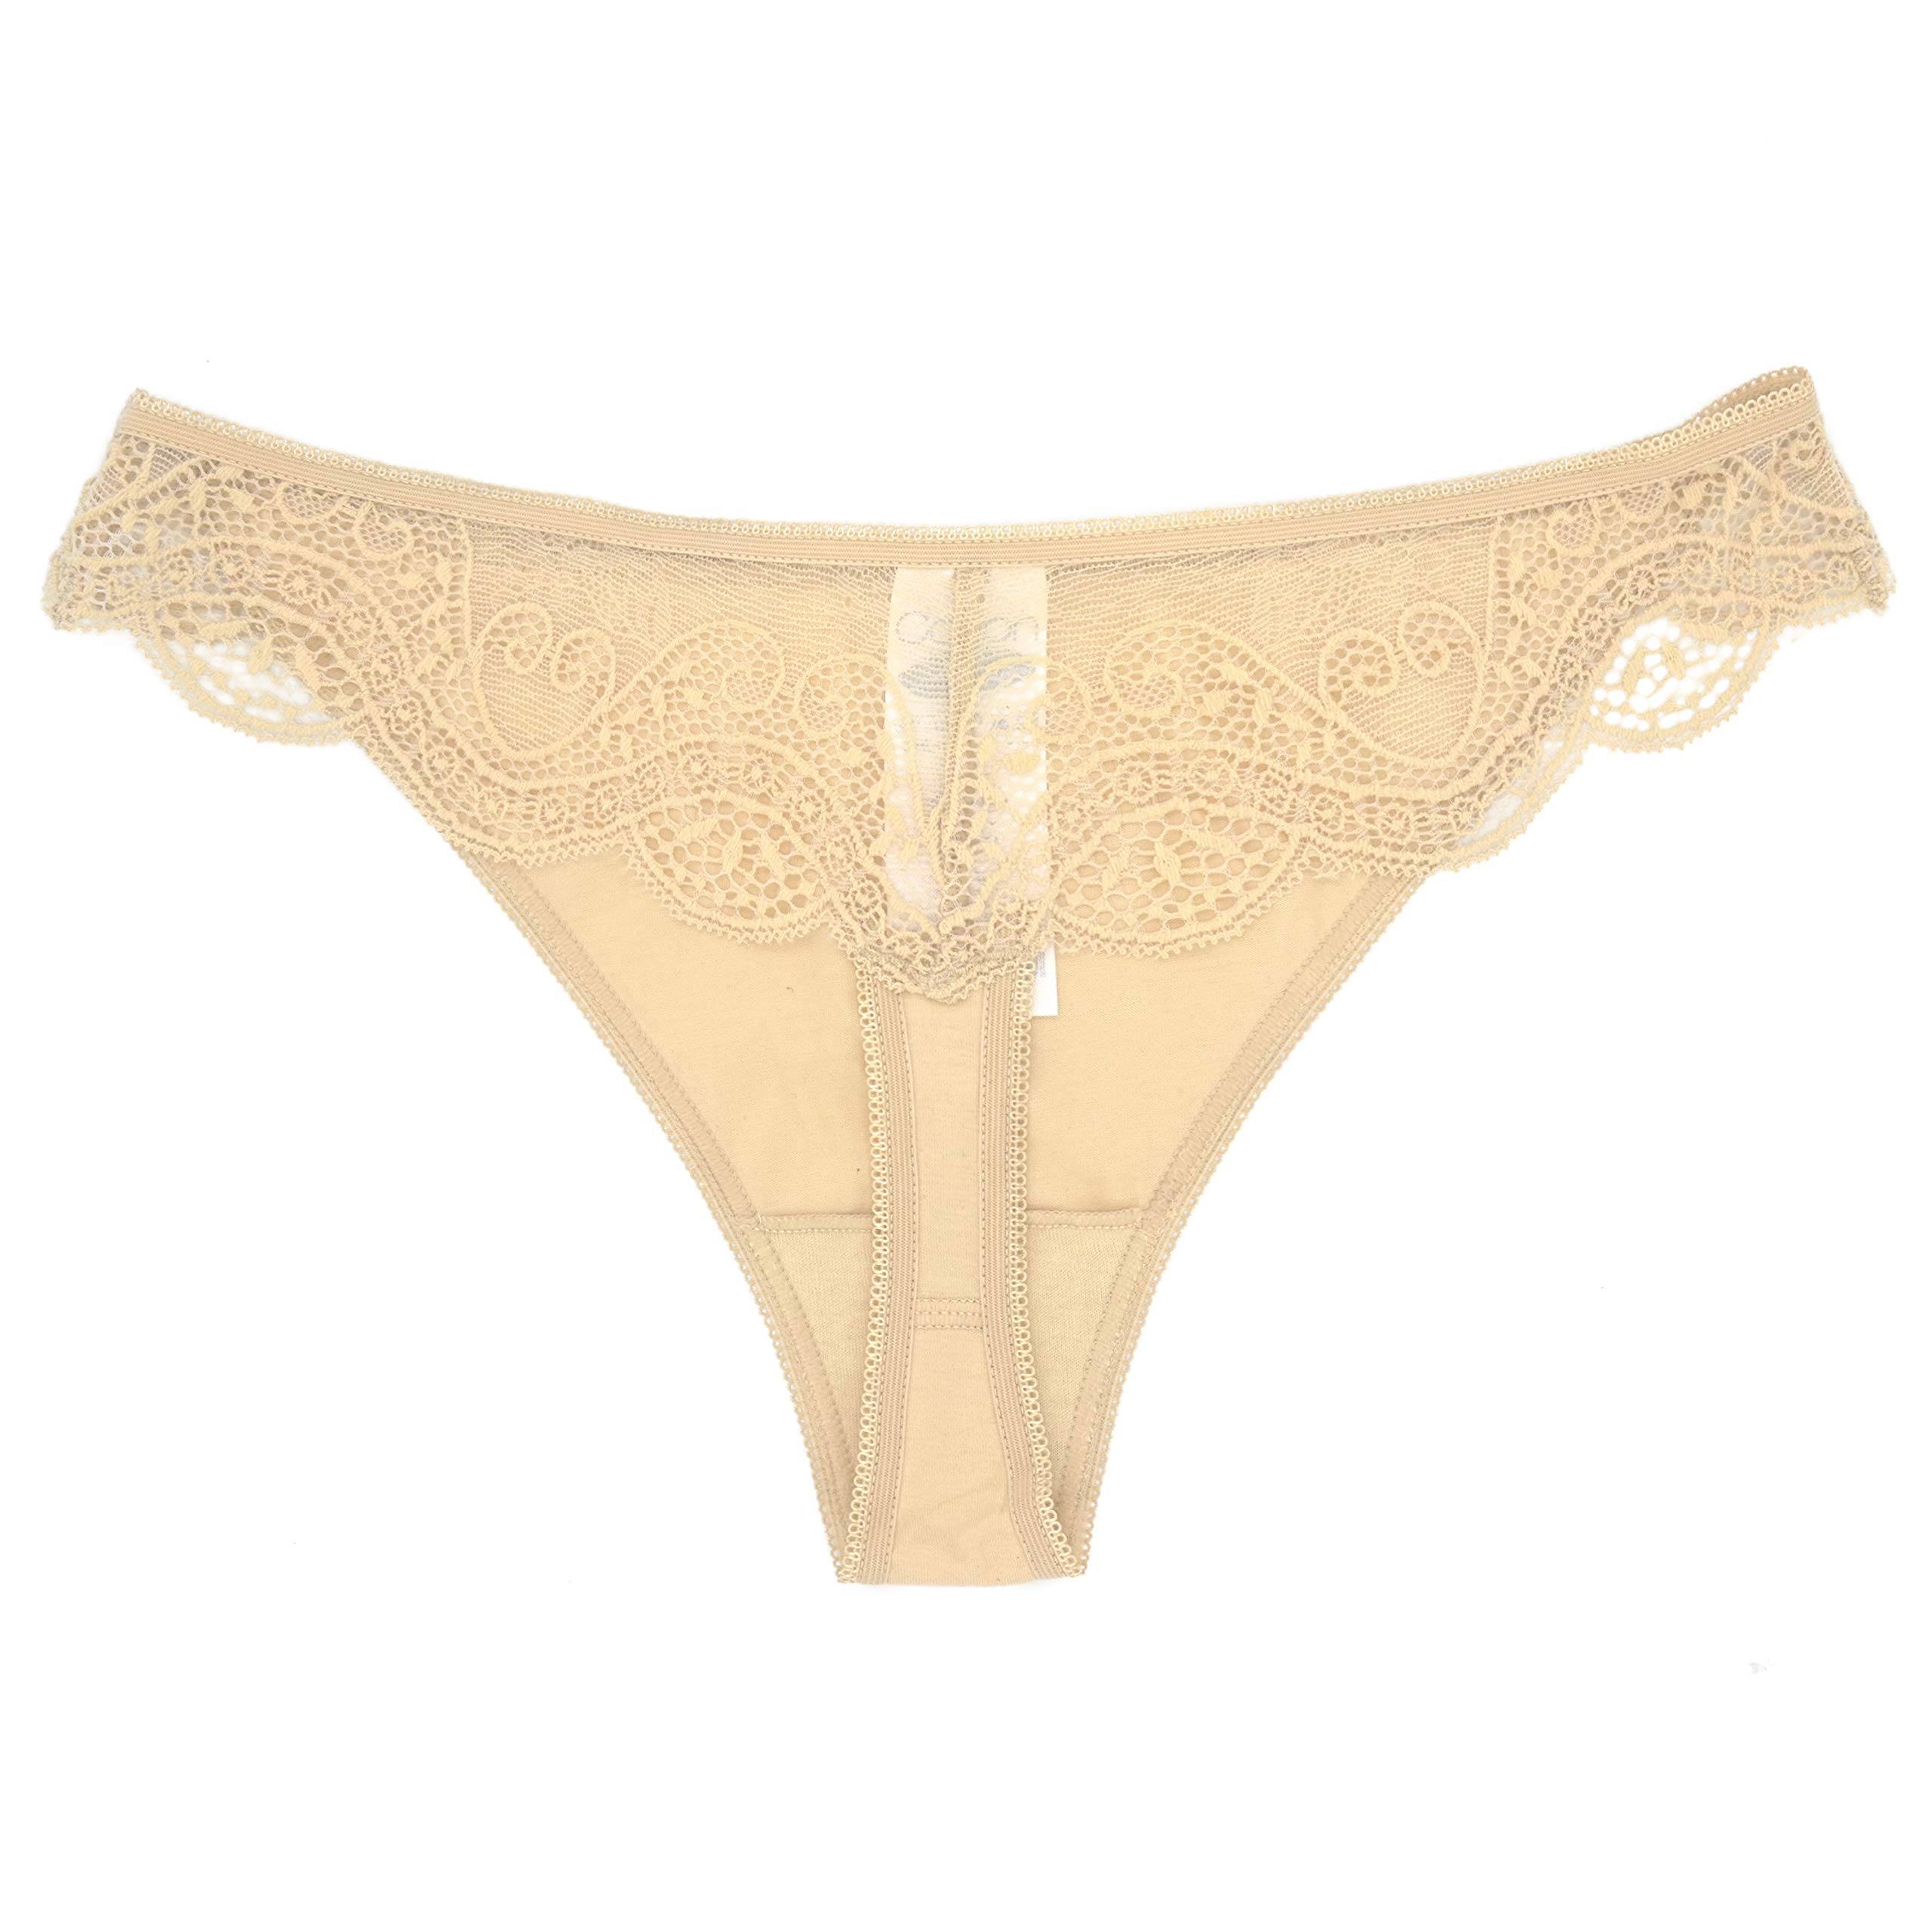 4127067b83a4 Galleon - 023 0301 Cotton See Through Panties Sexy Thongs Underwear Women  Panties Thong Pack, USA5/EUR M Beige 1 Pack